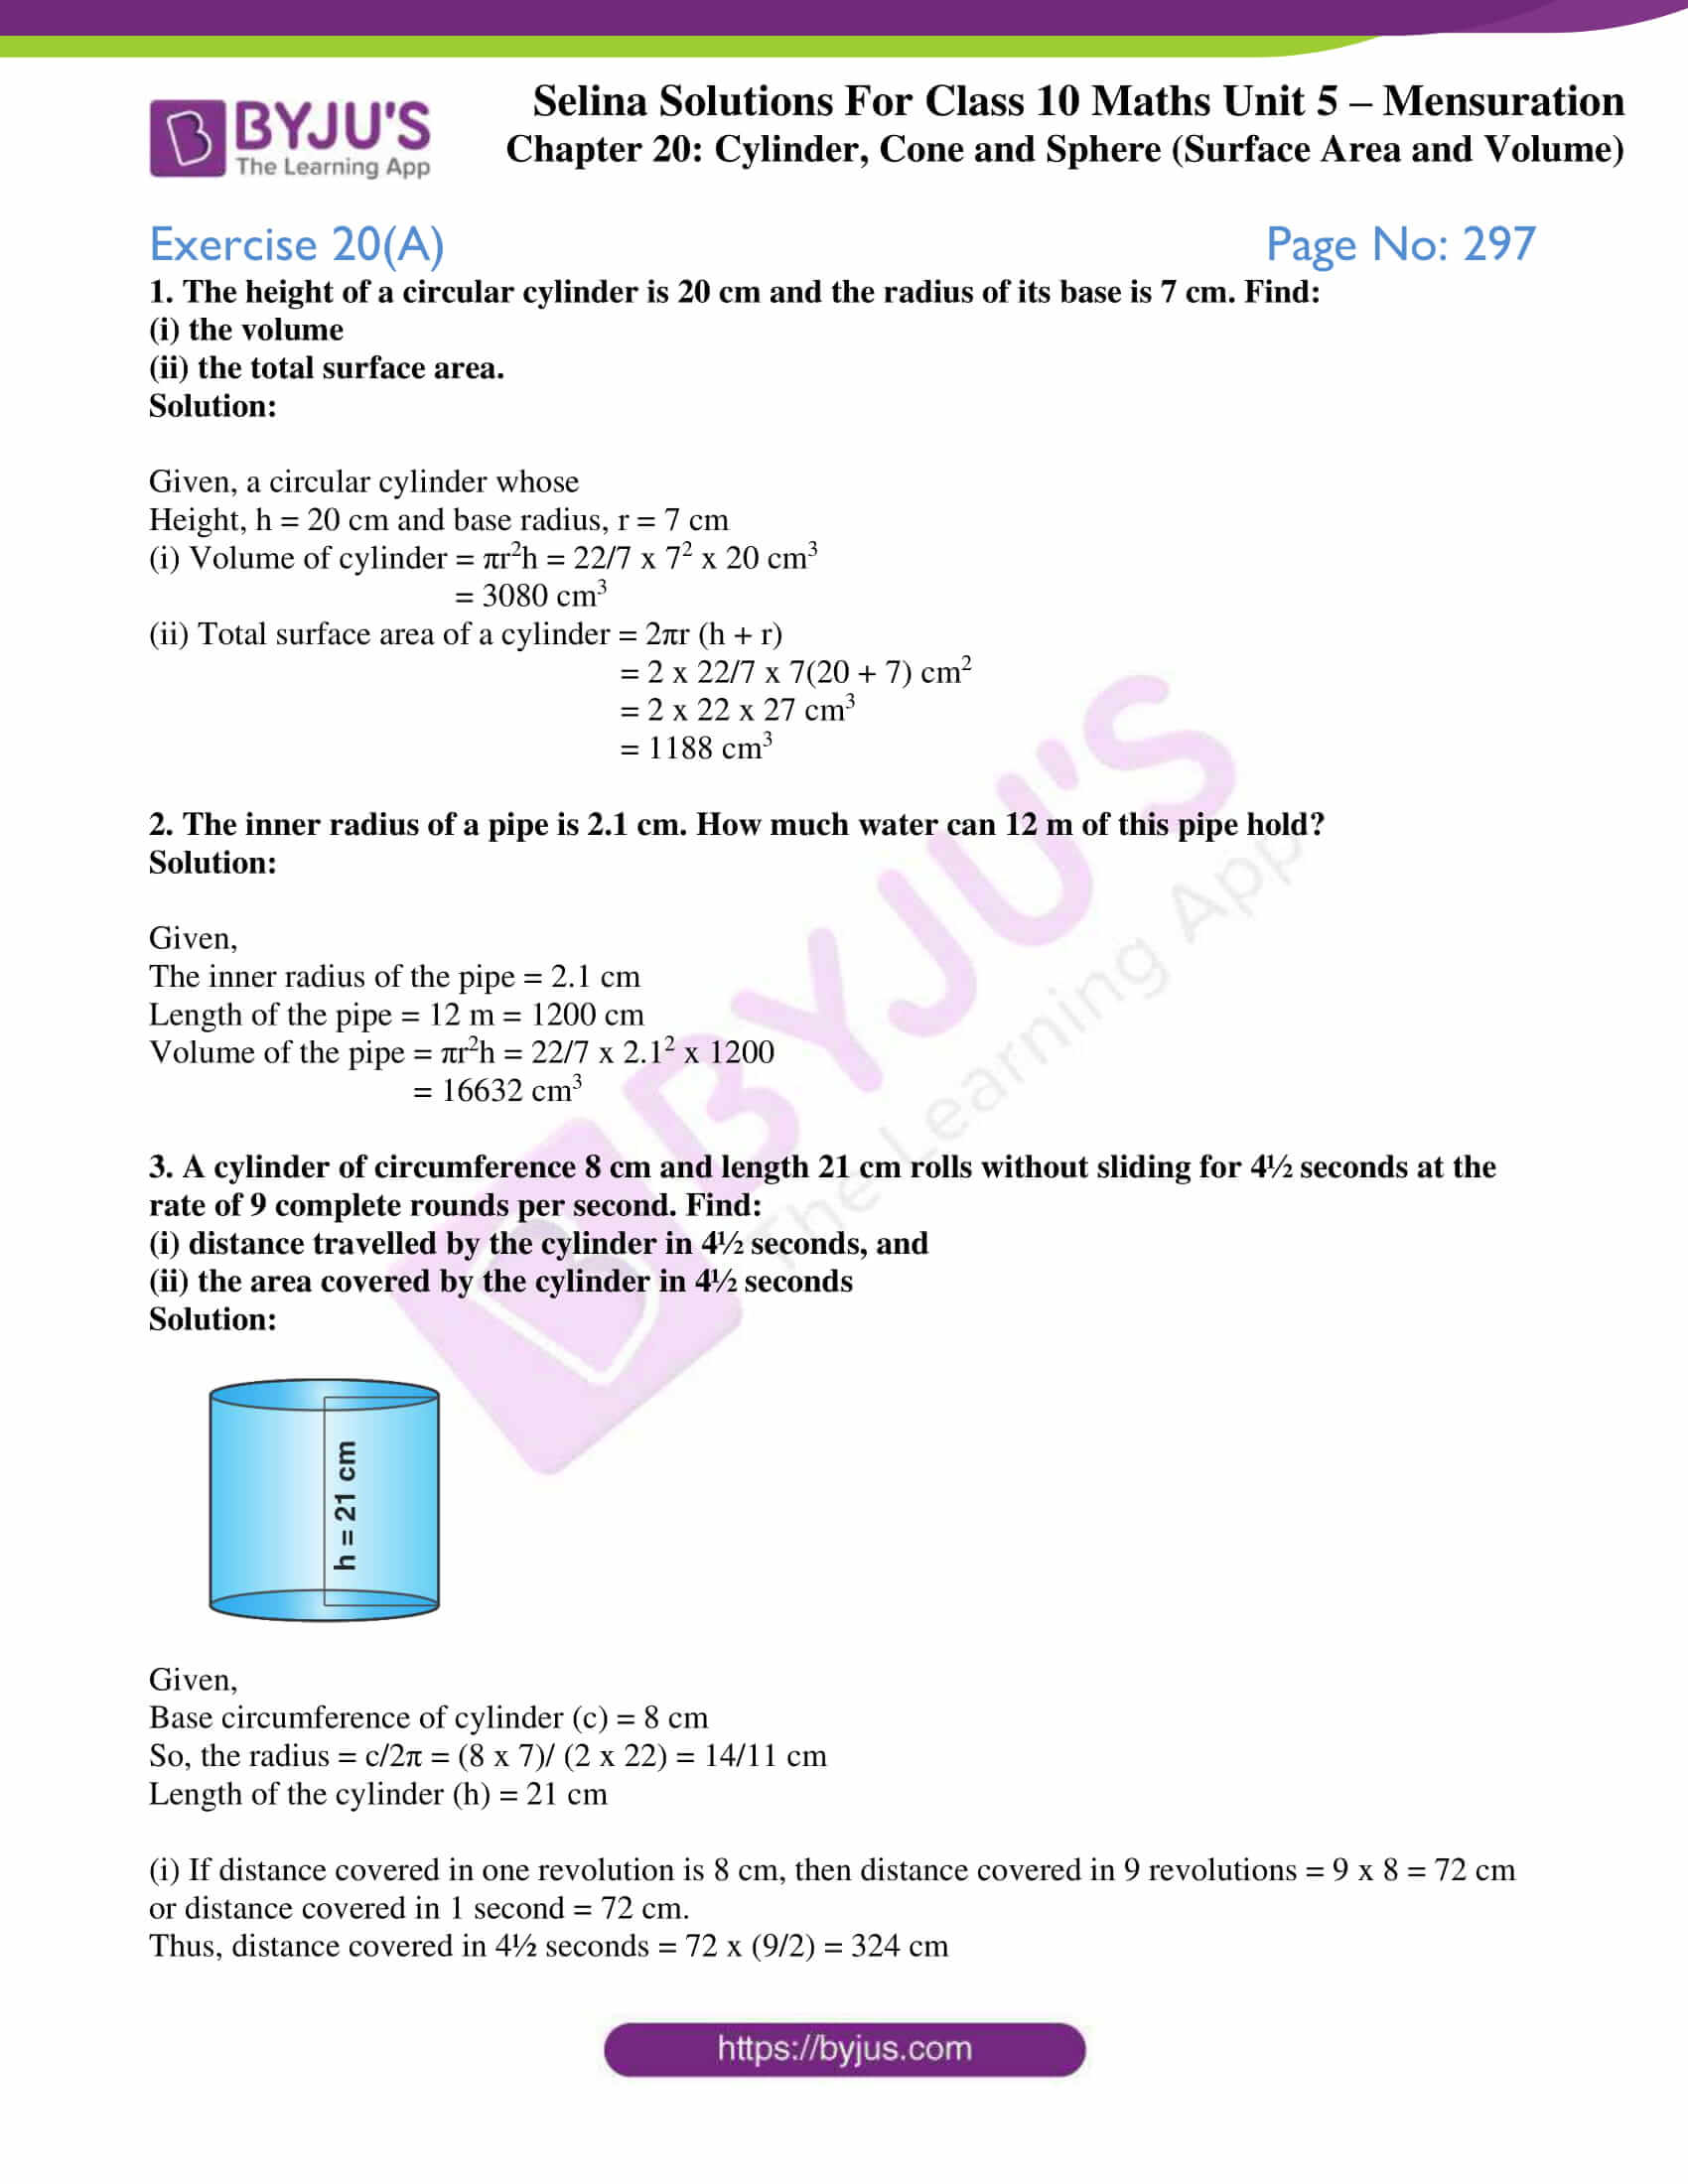 Selina Solutions Concise Mathematics Class 10 Chapter 20